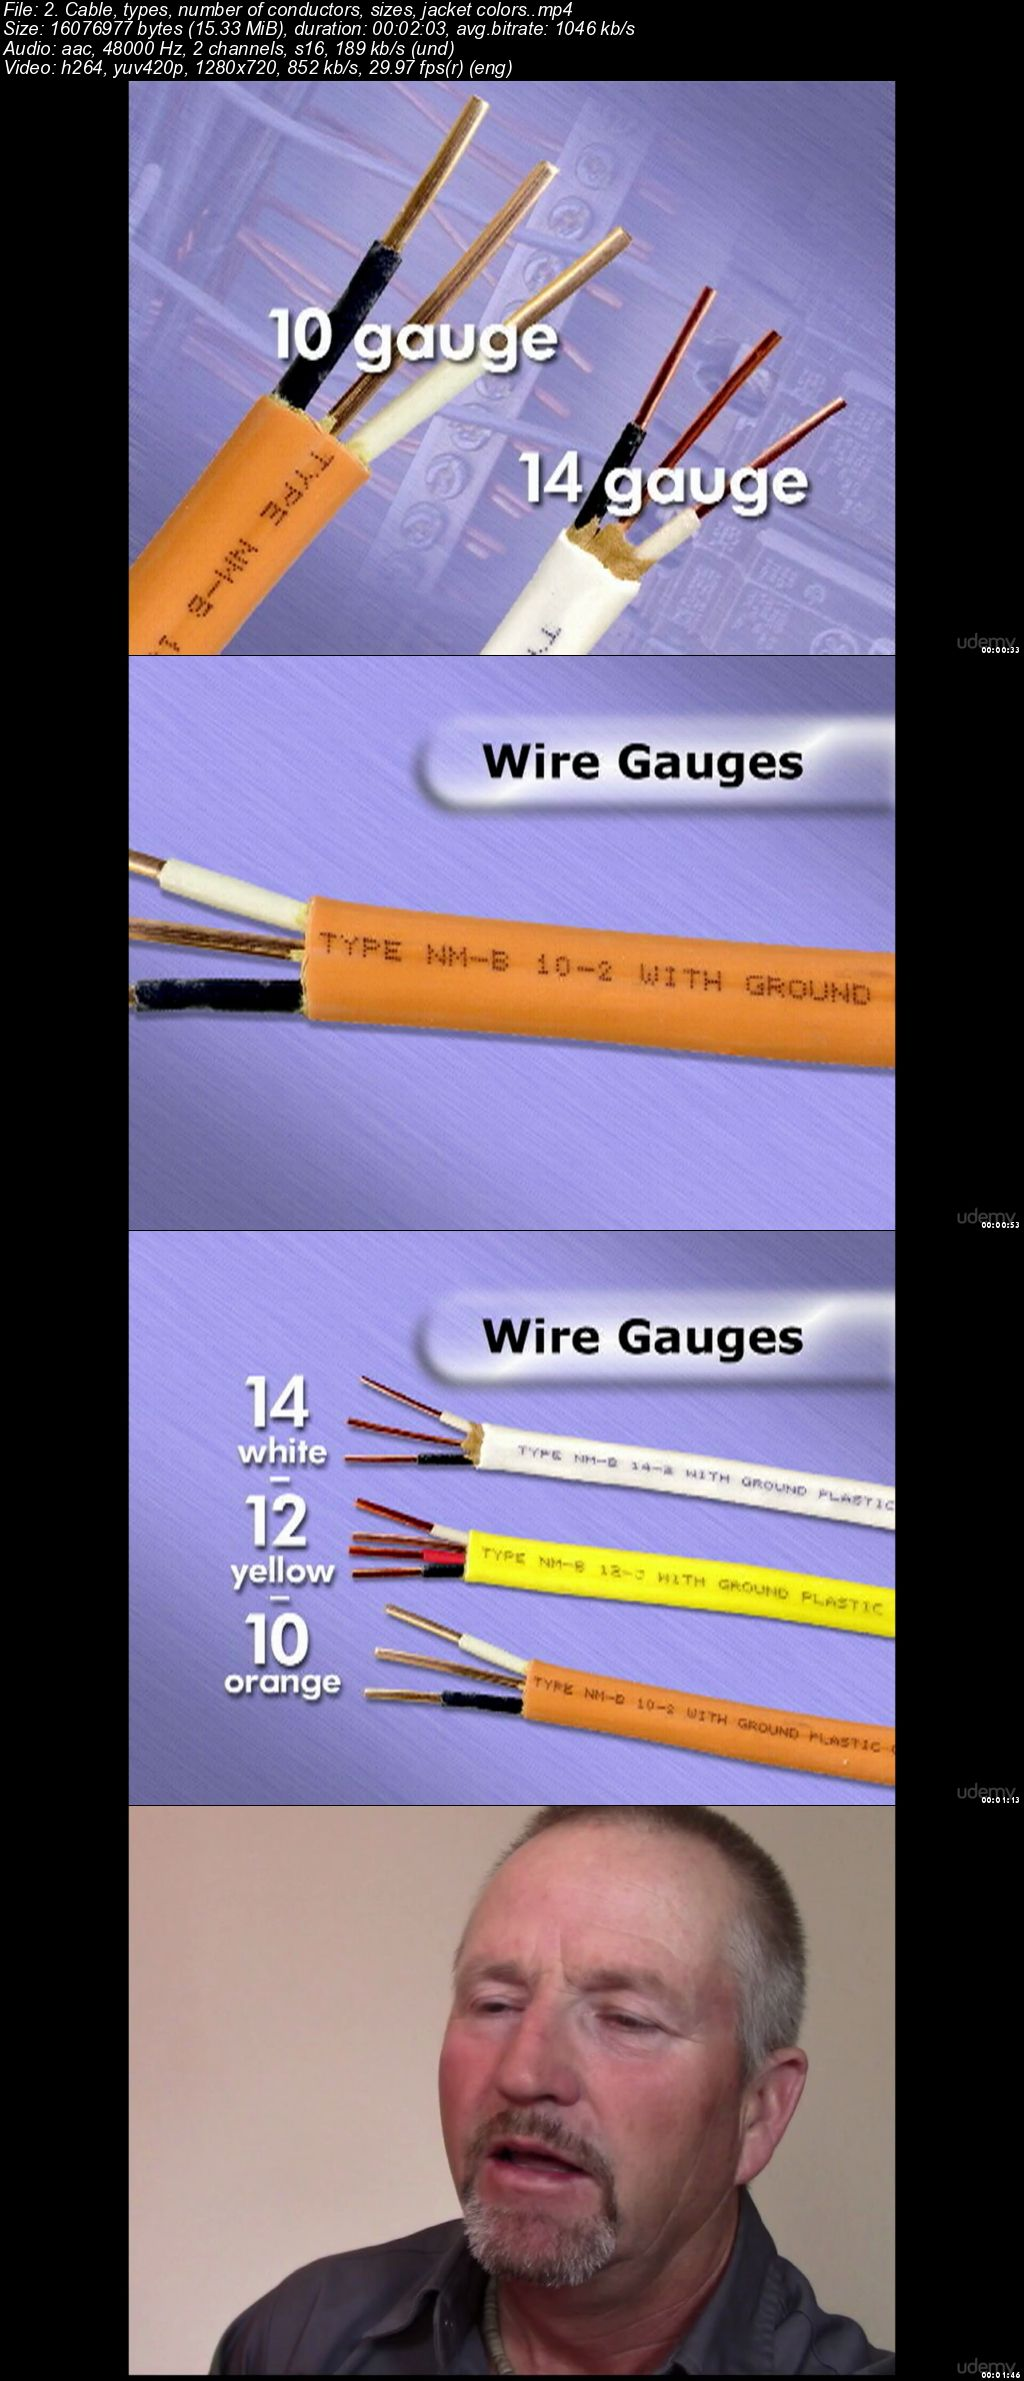 Electrical Wiring On The Basics Of Household Wiring Dvd Electrical